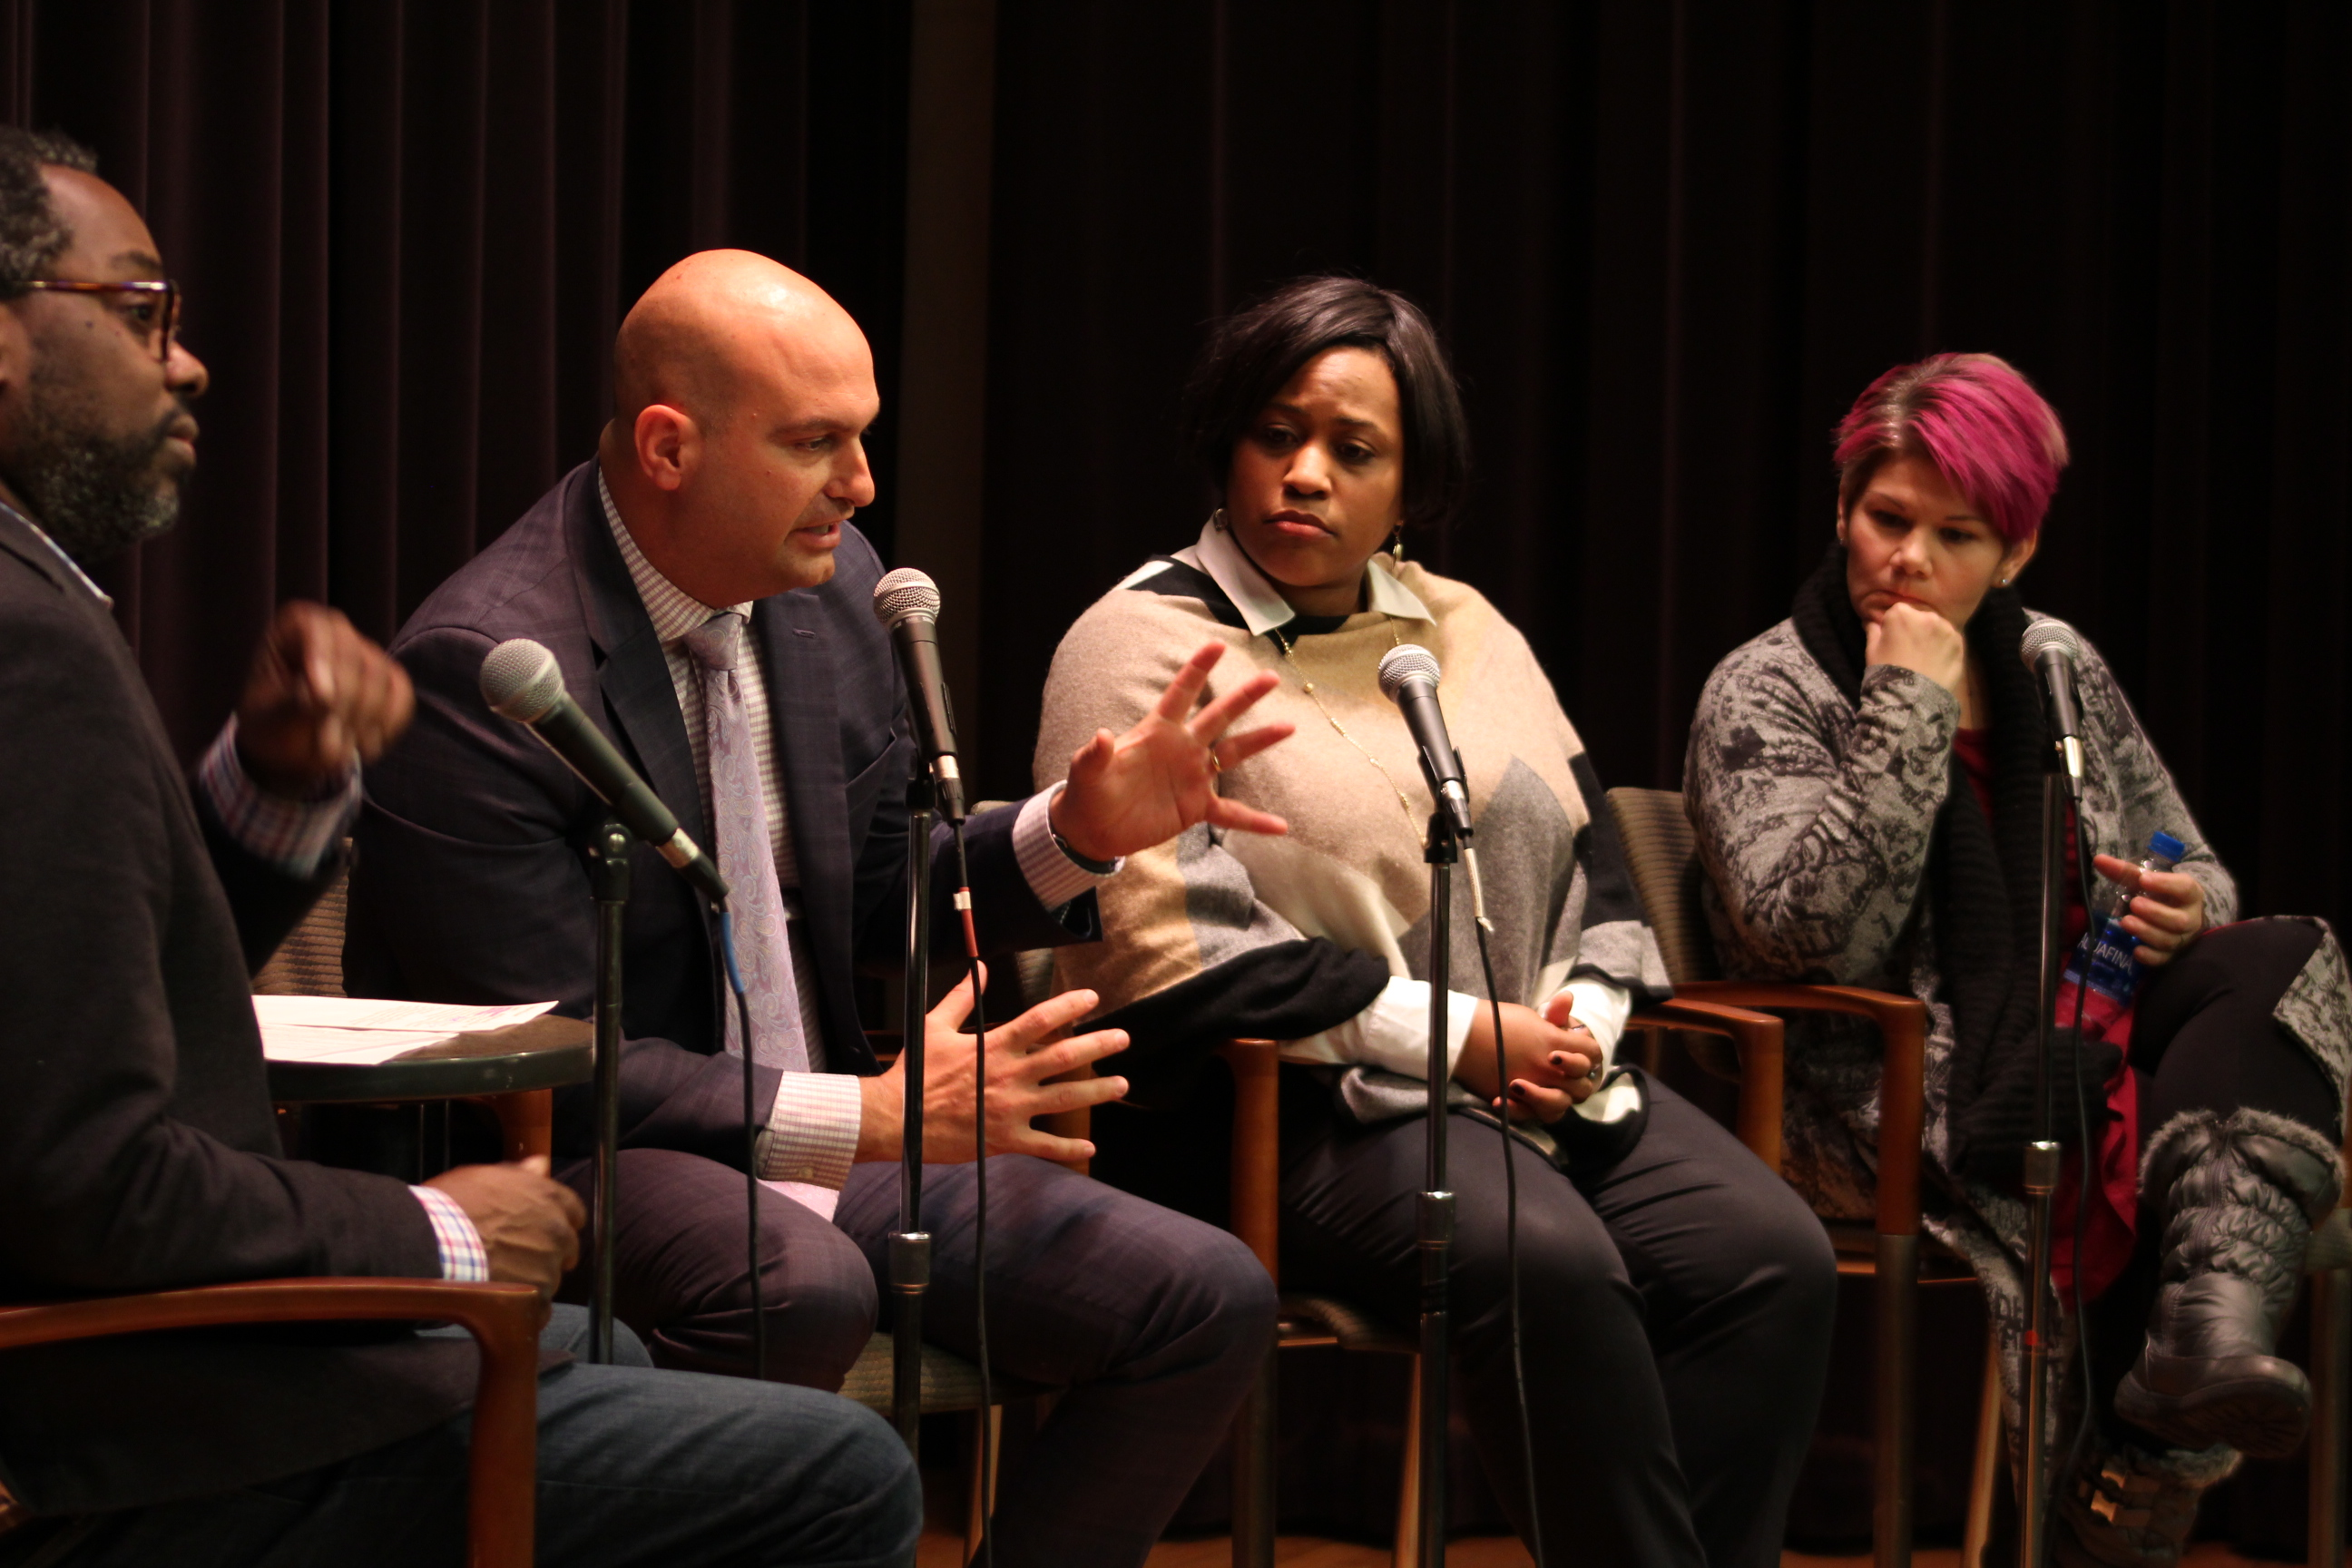 Detroit Superintendent Nikolai Vitti, second from left, says a tweak to school funding policy in Michigan would alleviate some of the effects of high student mobility. Looking on from left are moderator Stephen Henderson of WDET, Darienne Driver, CEO of United Way of Southeastern Michigan, and Maria Montoya, who works in the charter school office of Grand Valley State University.